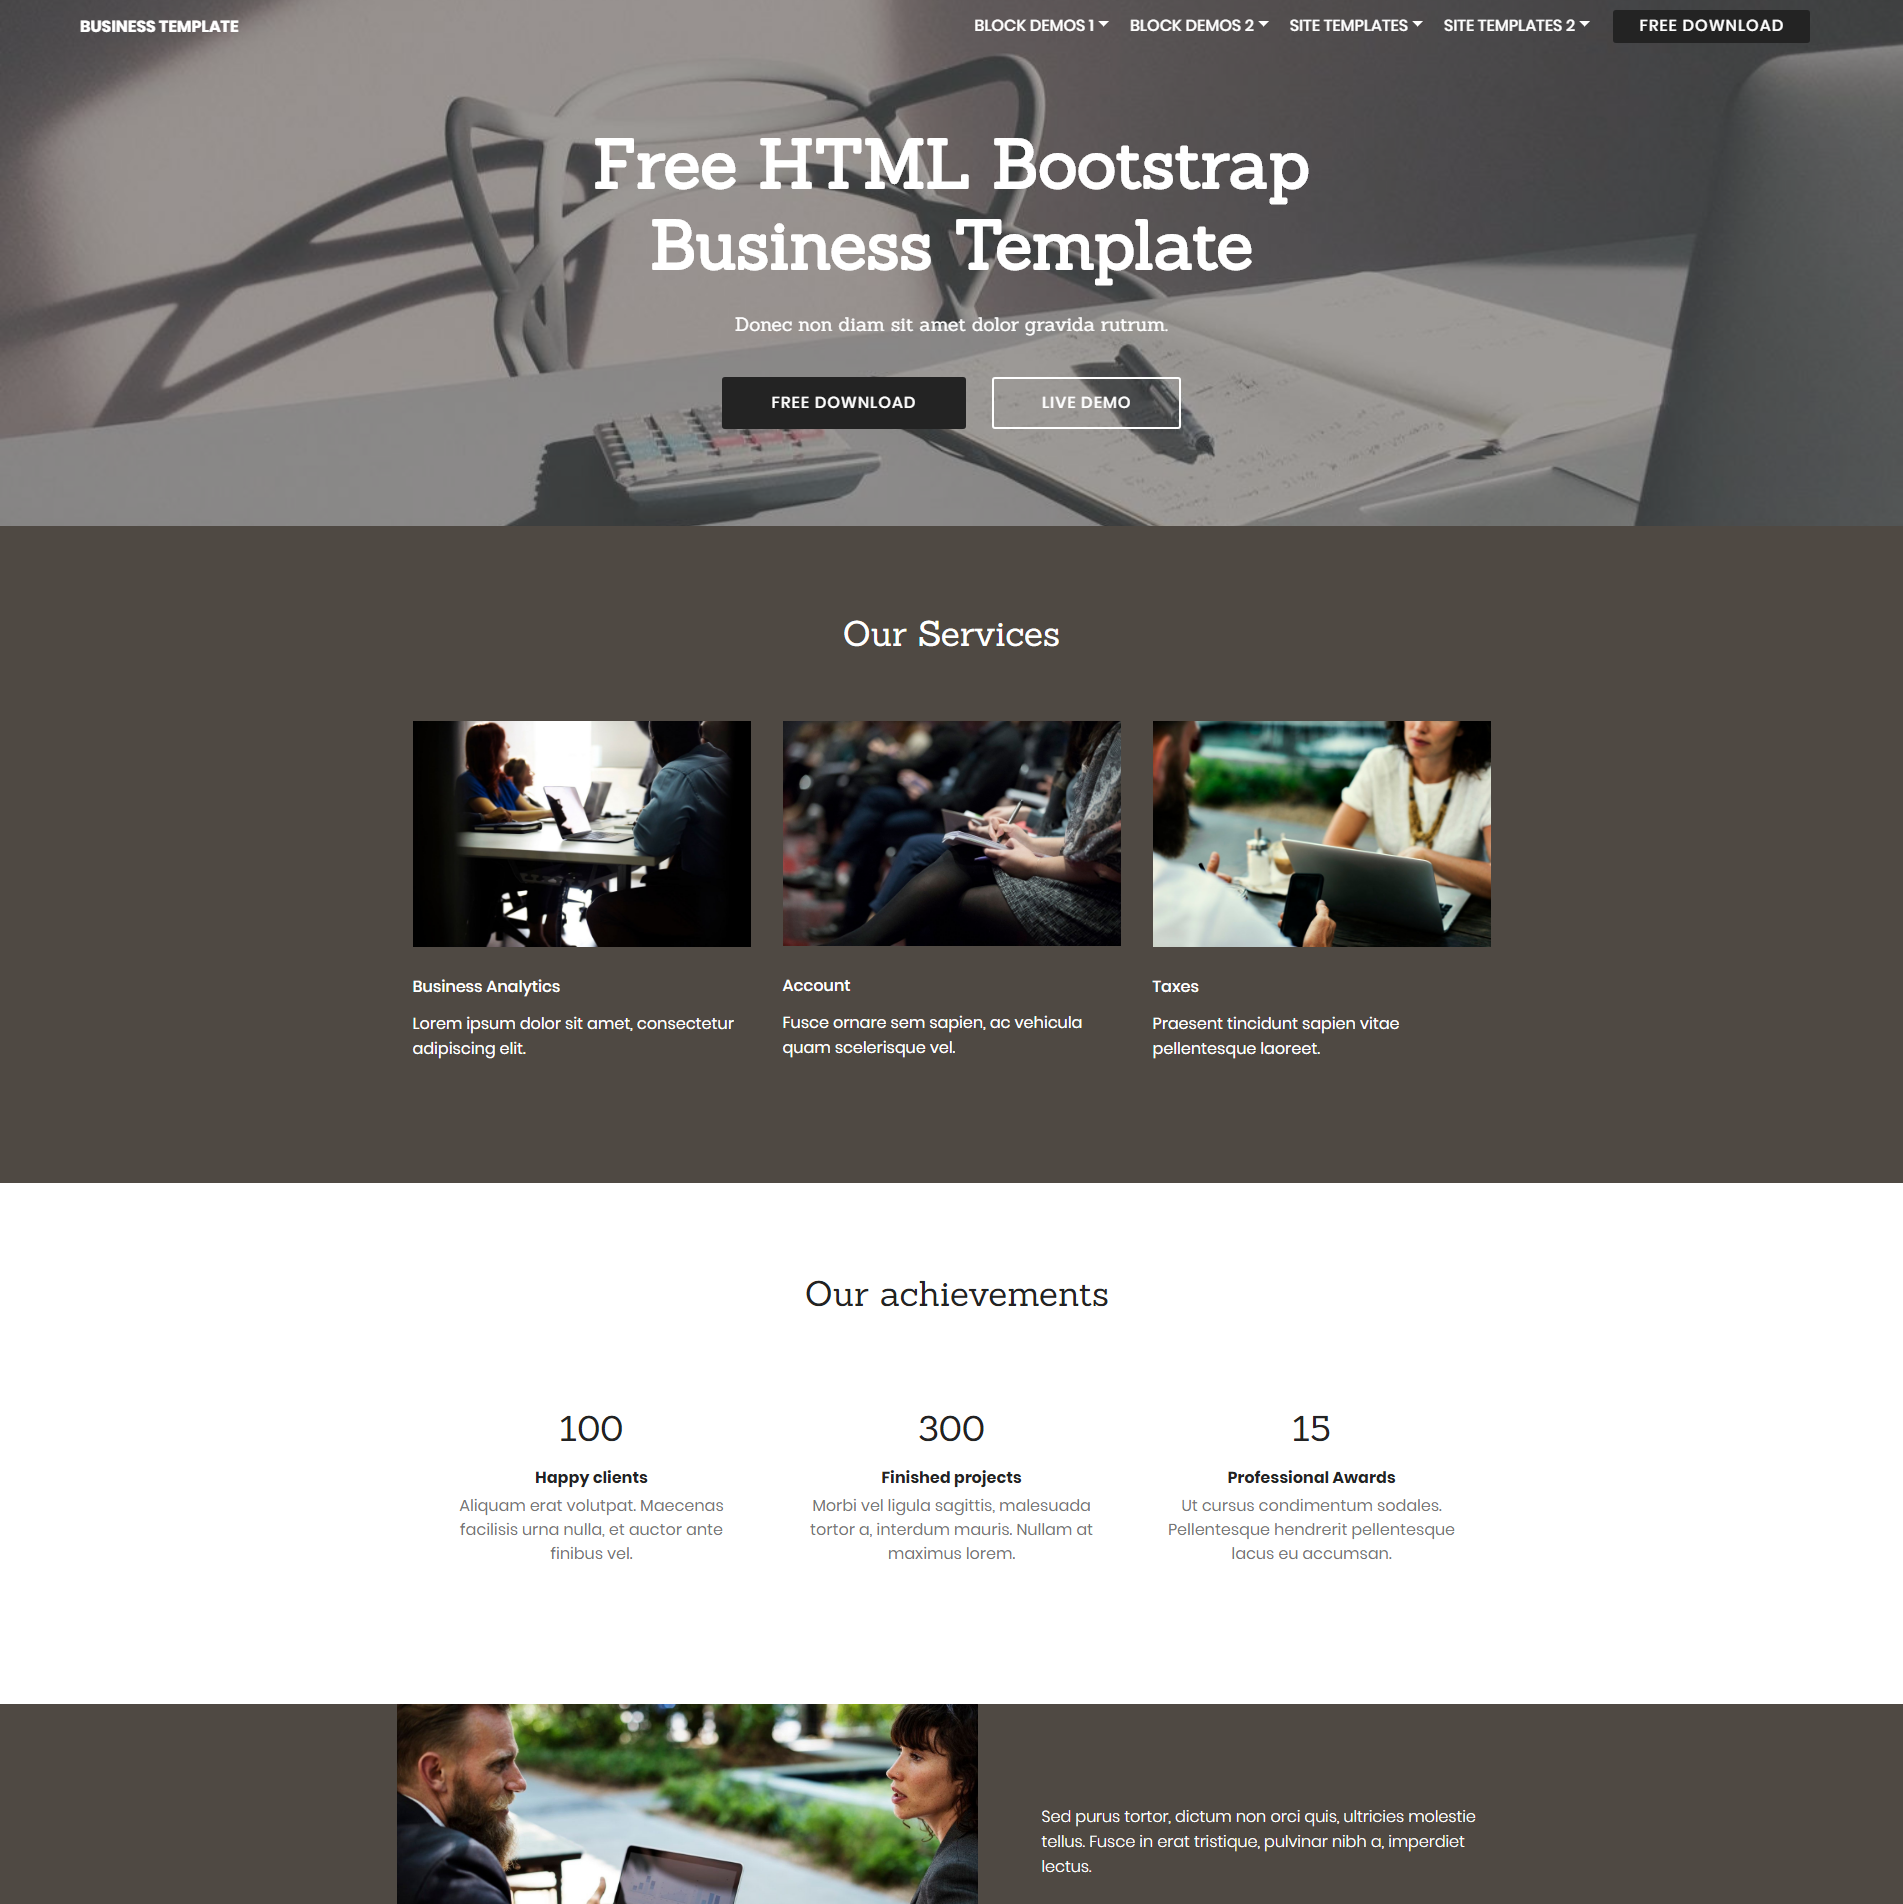 HTML Bootstrap Busines Templates